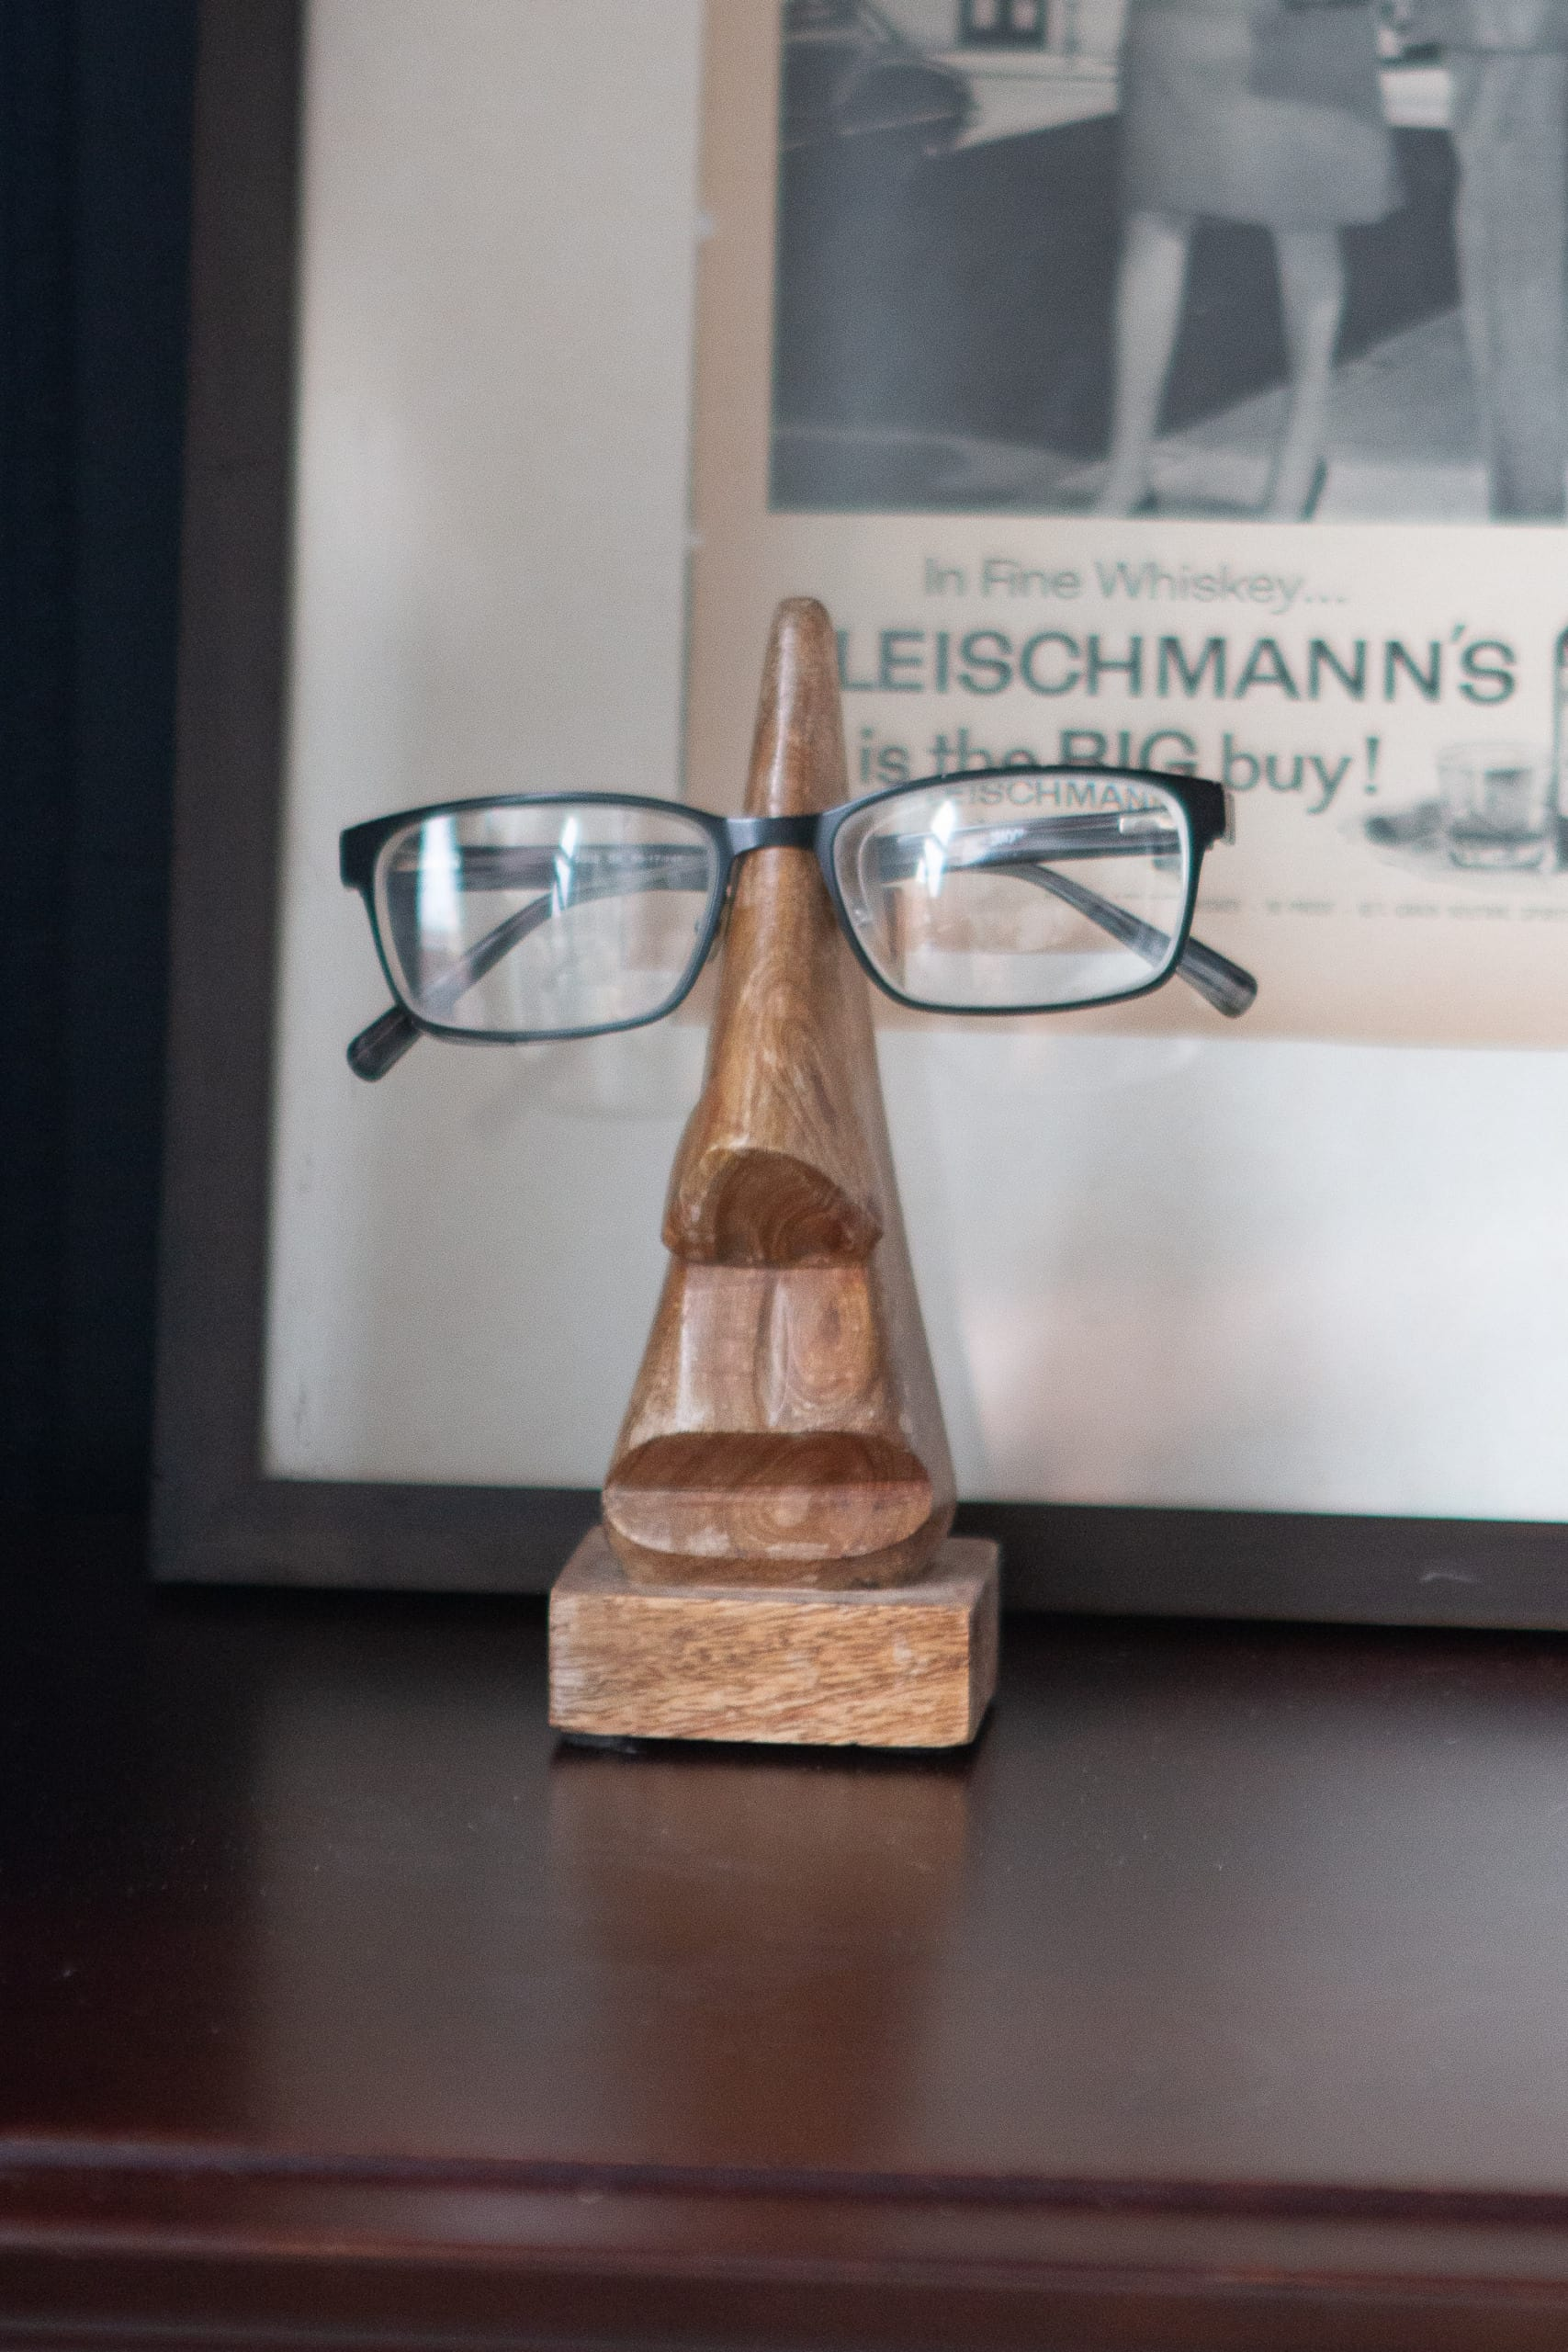 Eyeglasses on a nightstand